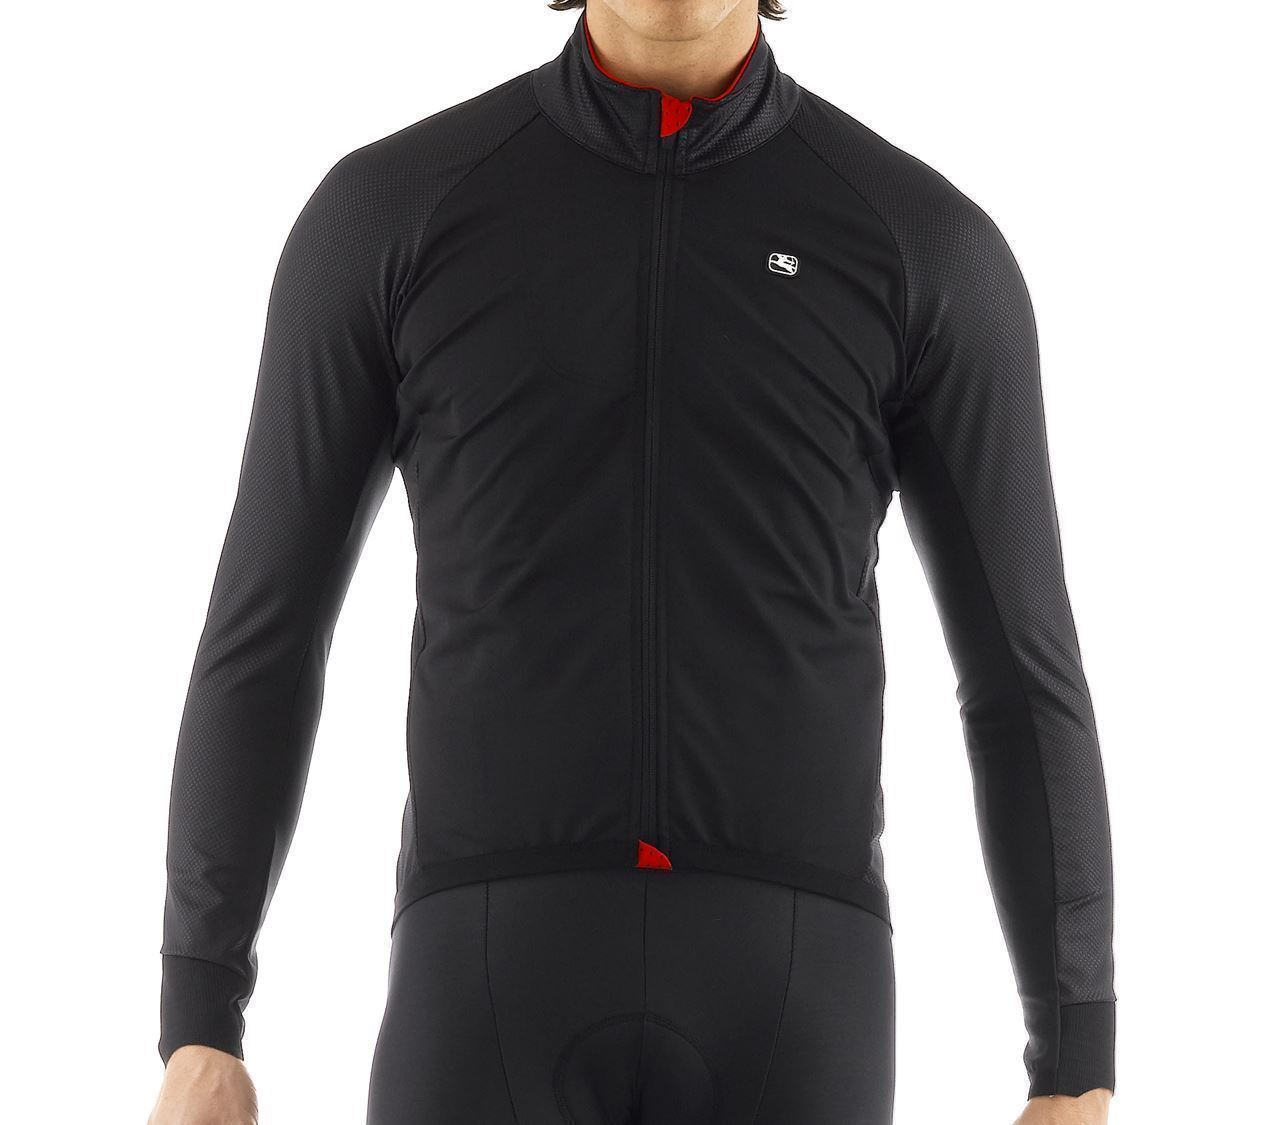 Giordana Frc Light Weight Winter Jacket Black